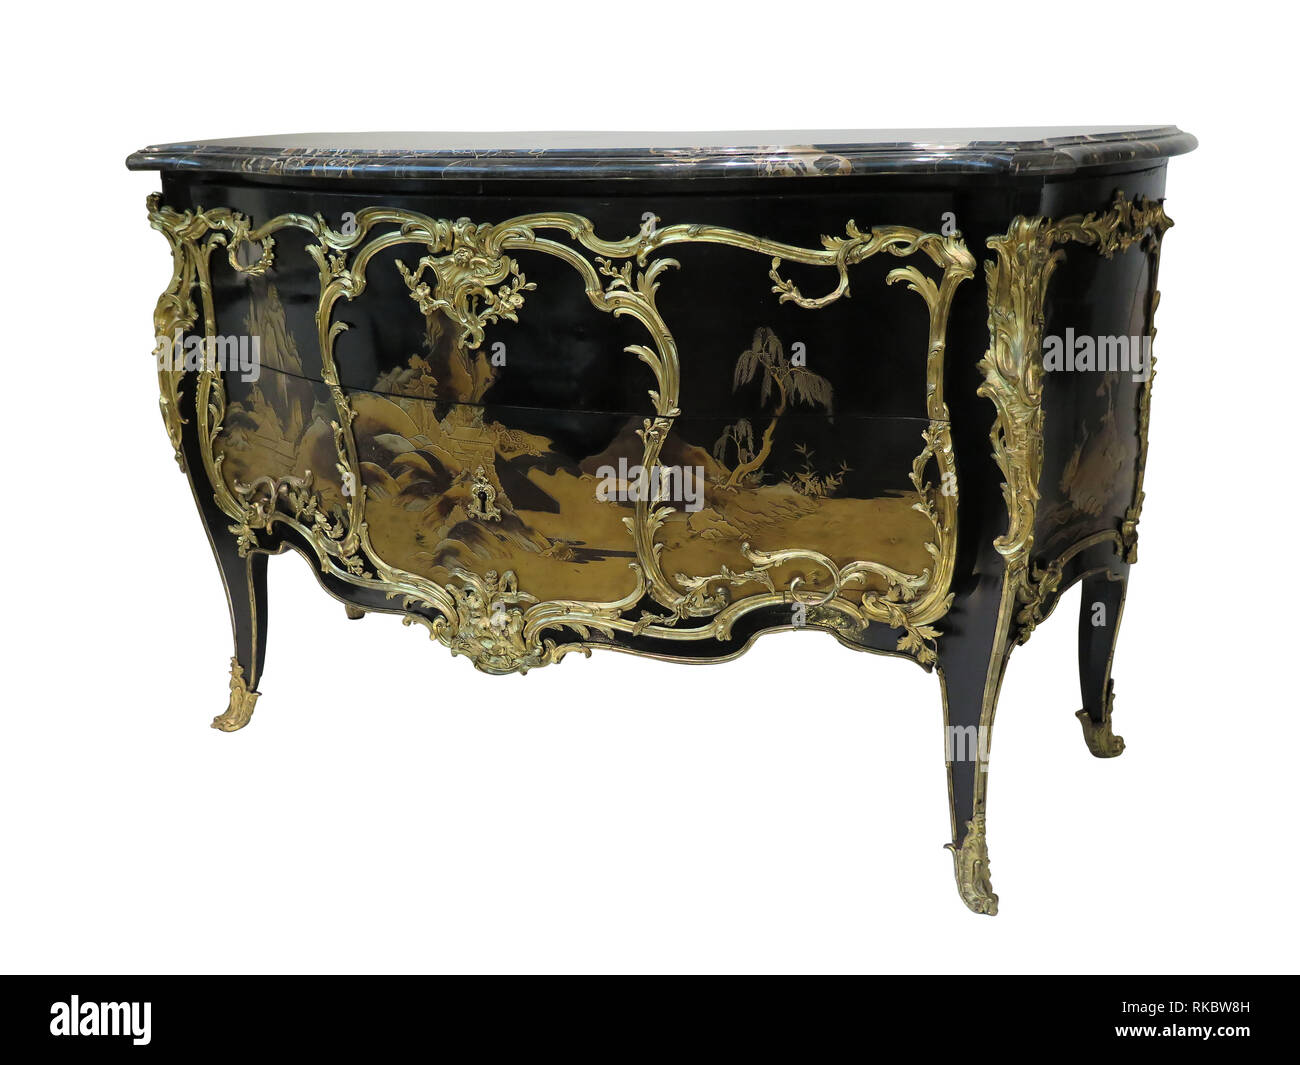 Antique chest of drawers known as commode wood inlaid ormolu furniture isolated on white with clipping path - Stock Image